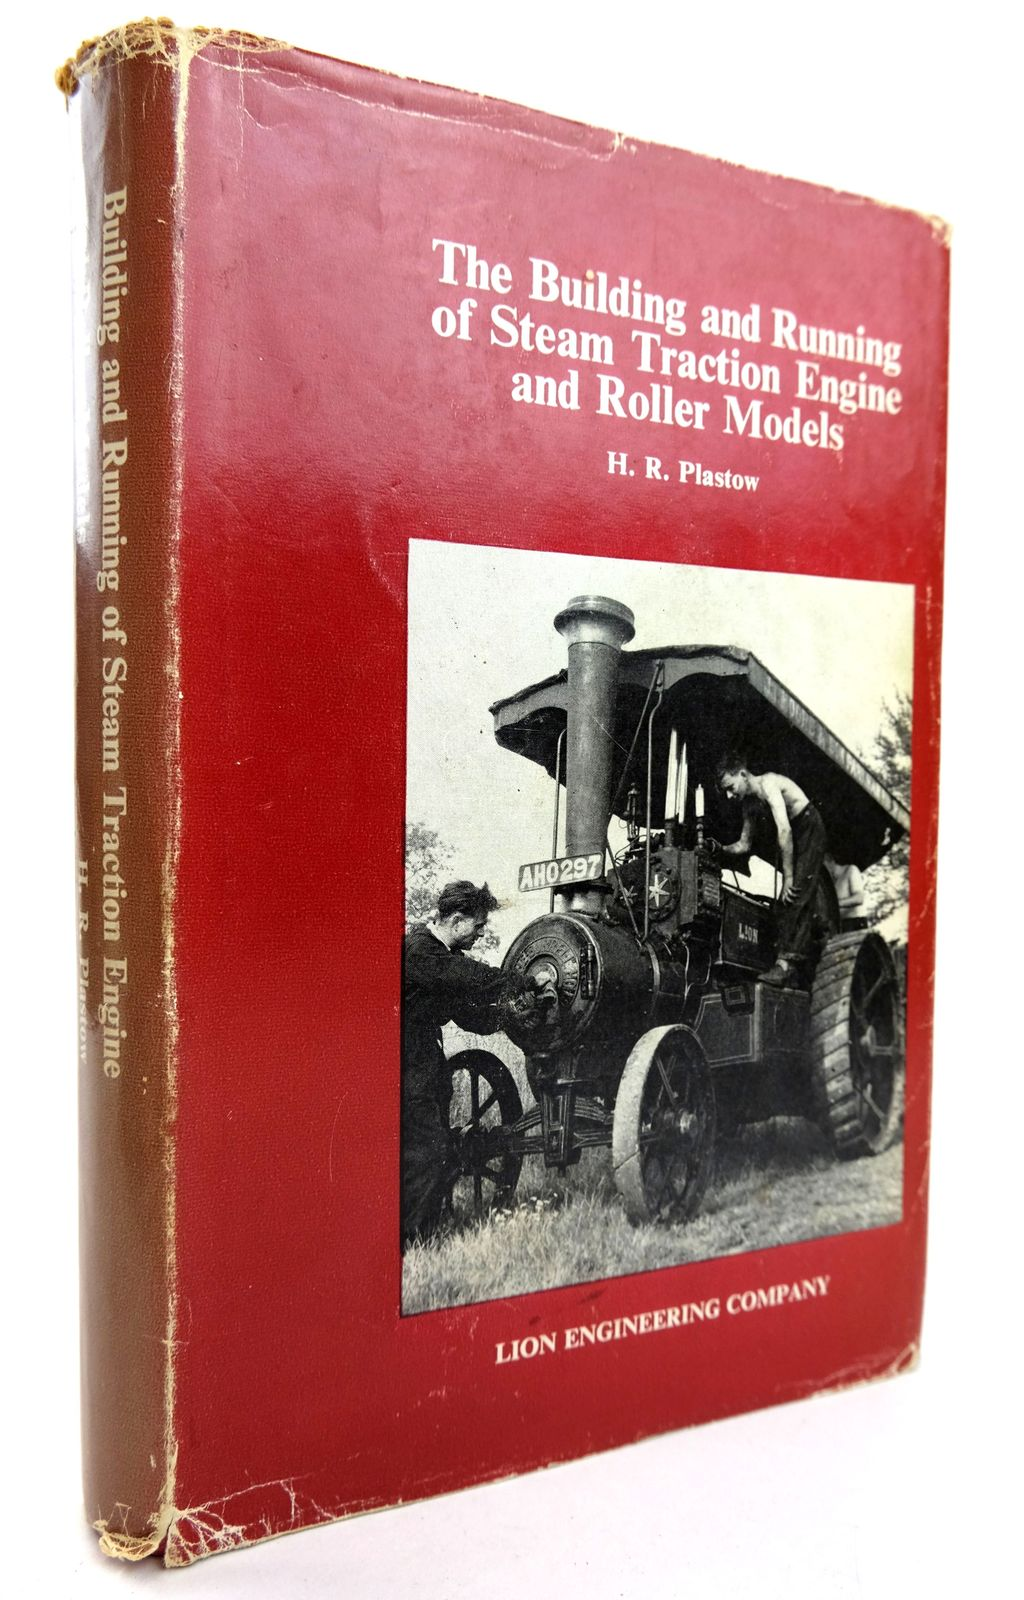 Photo of THE BUILDING AND RUNNING OF STEAM TRACTION ENGINE AND ROLLER MODELS written by Plastow, H.R. published by Lion Engineering Company (STOCK CODE: 1818750)  for sale by Stella & Rose's Books